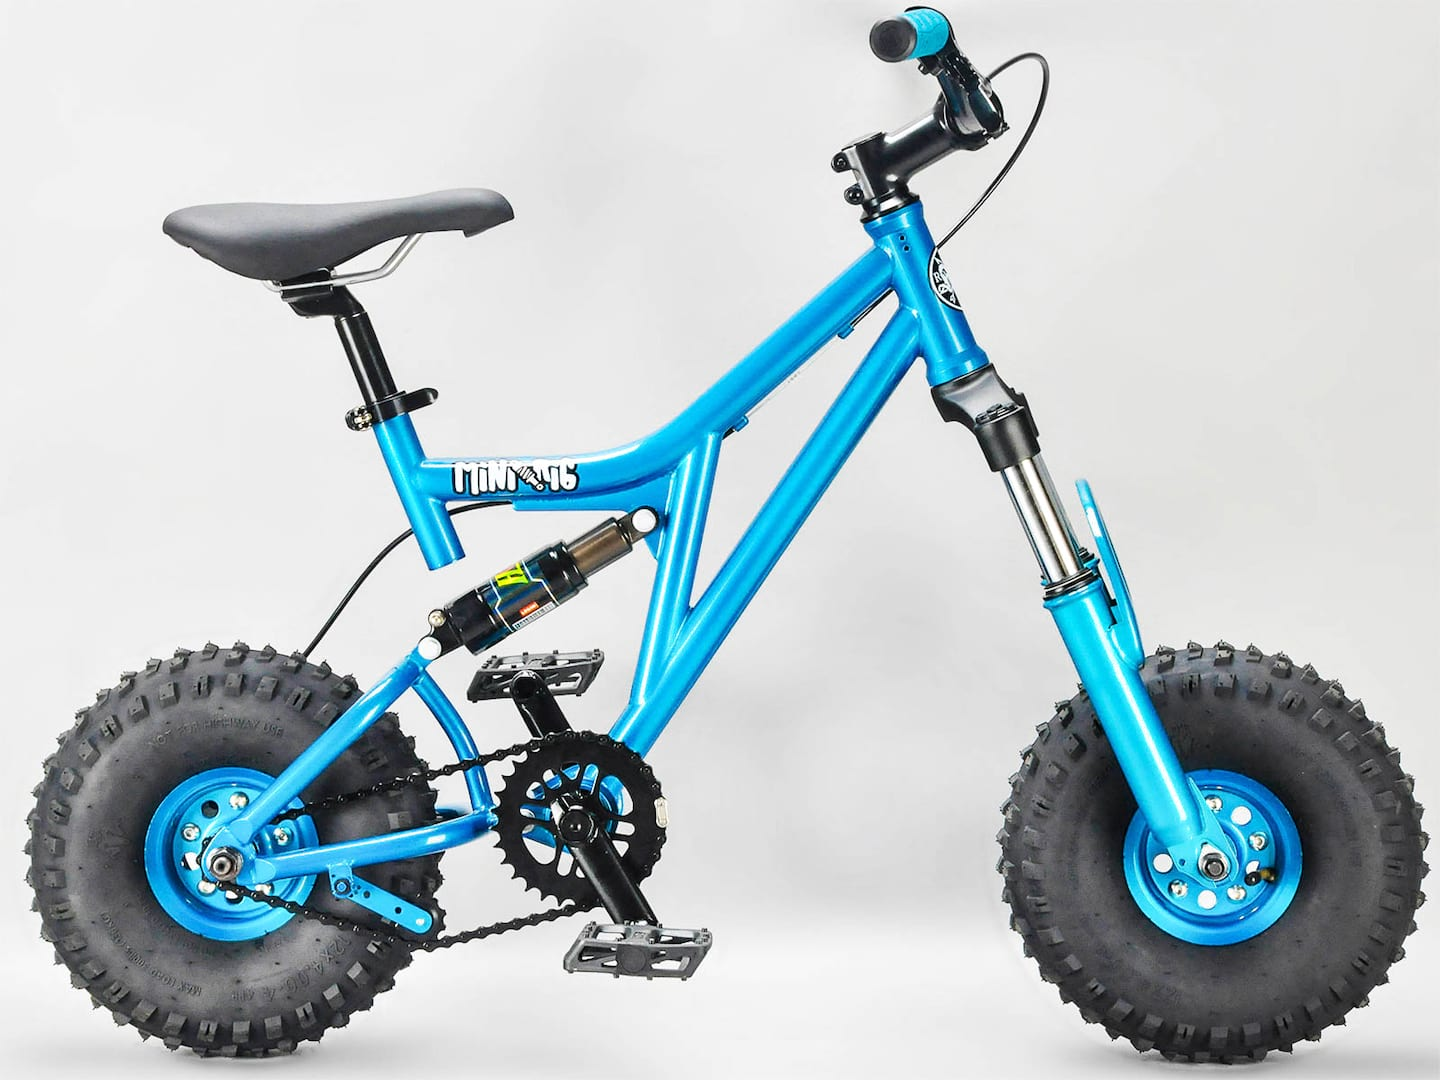 rocker mini rig mini downhill bike